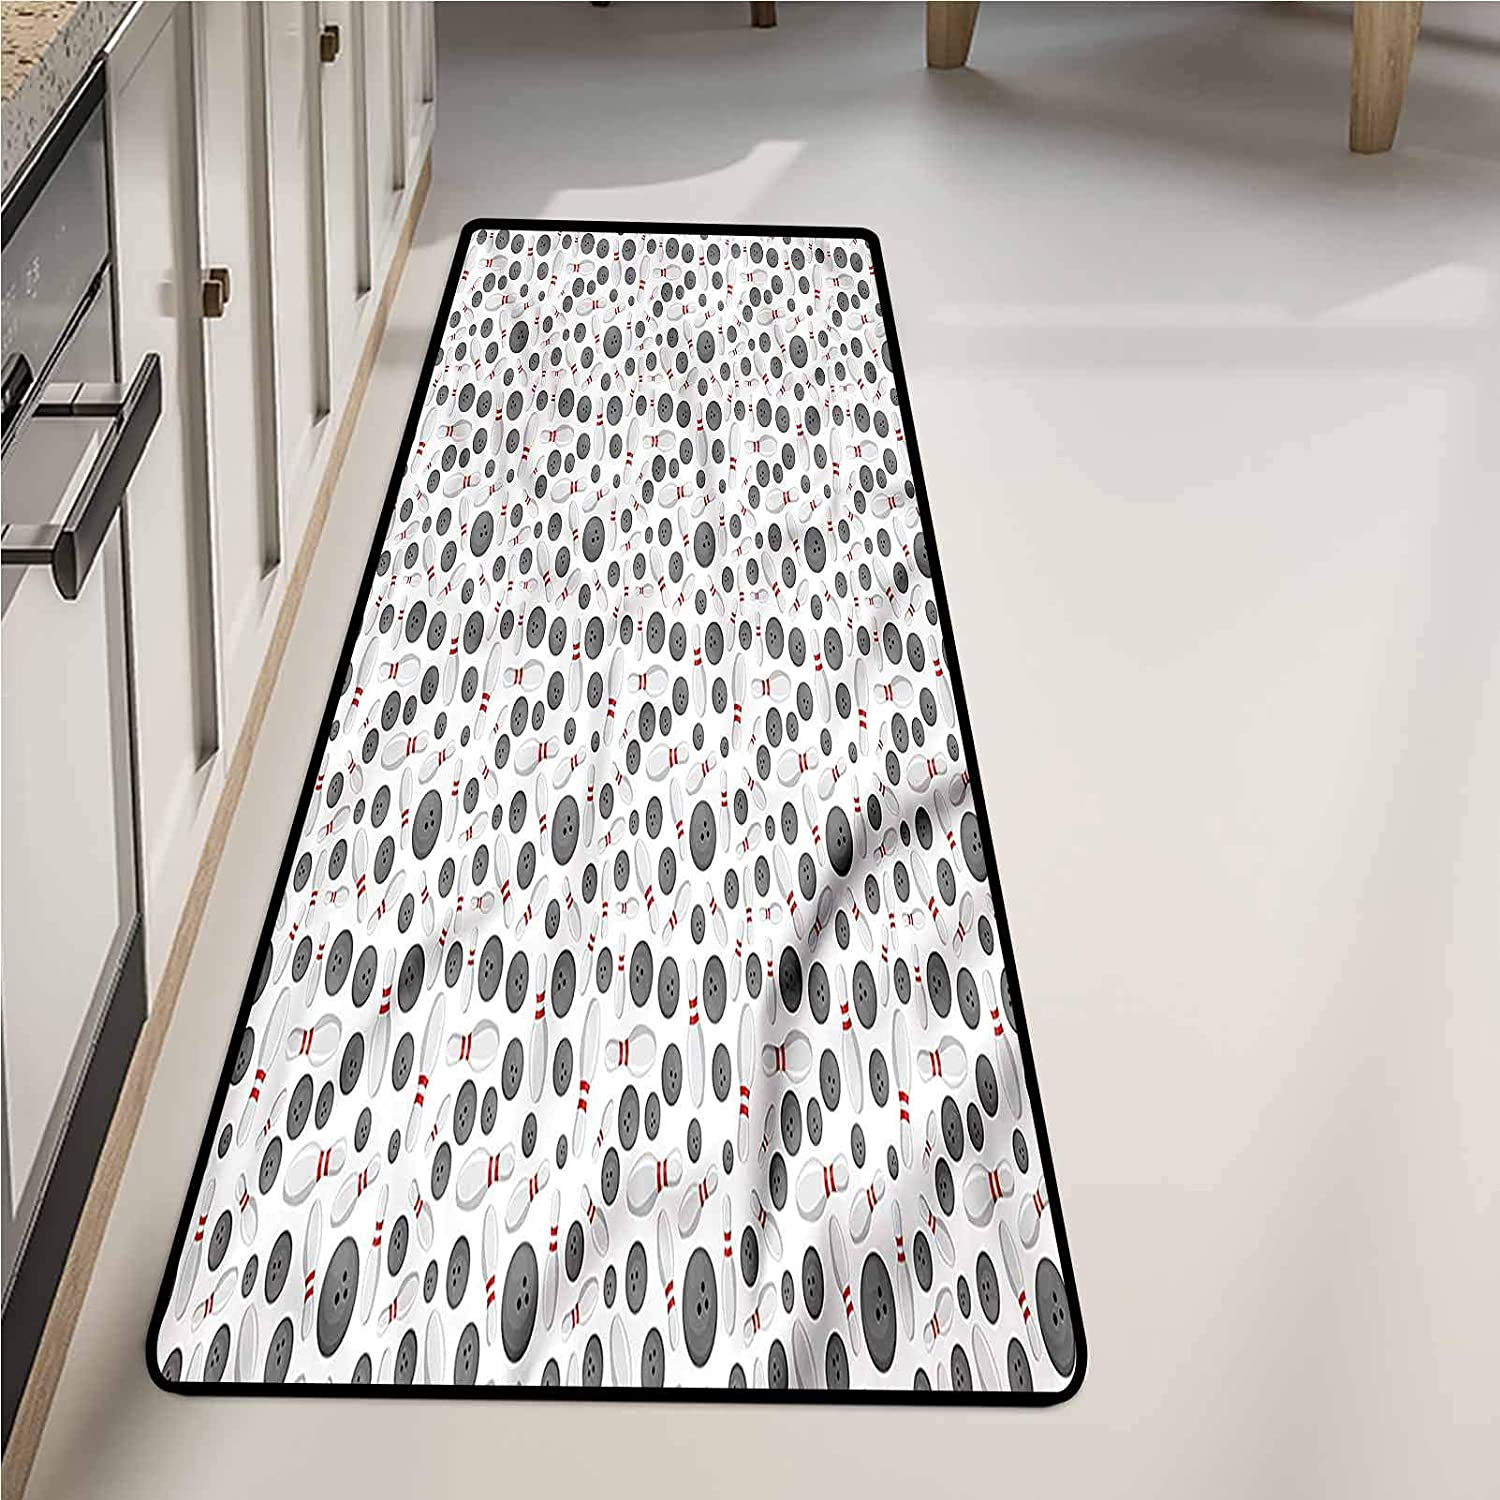 Kitchen Rugs and Mats 24 x 72 Inch, Bowling Scattered Game Icons Non-Slip Area Rugs